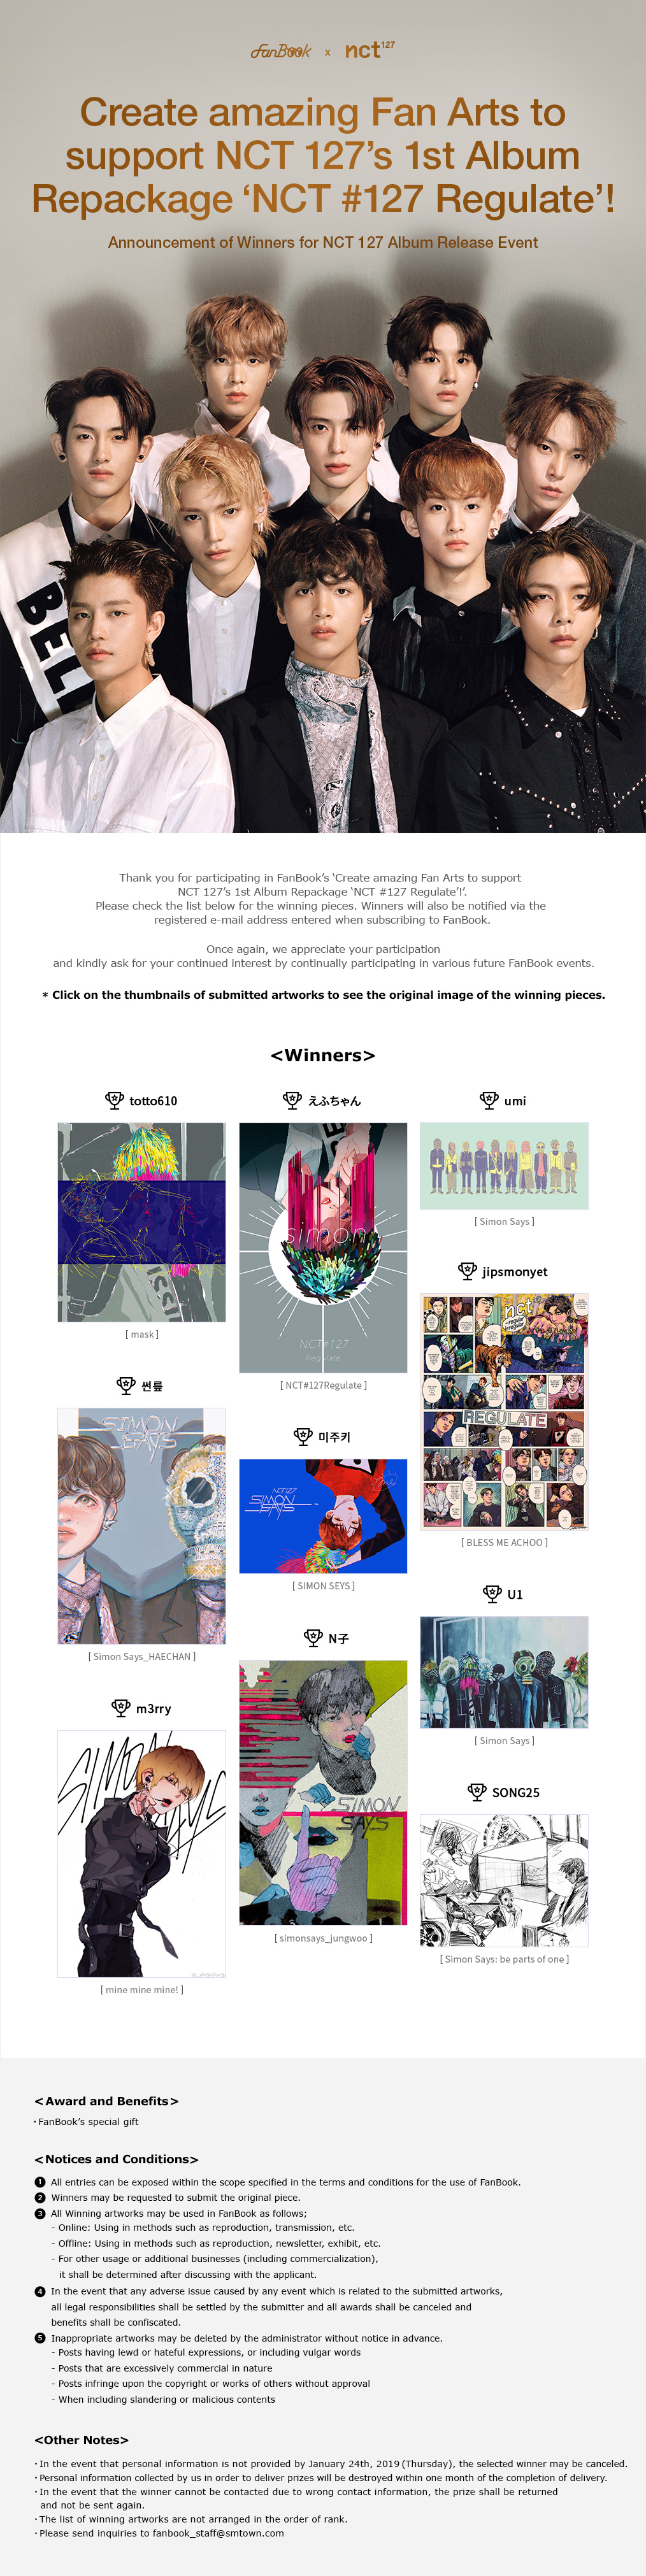 FanBook X nct 127 Fan Art Event